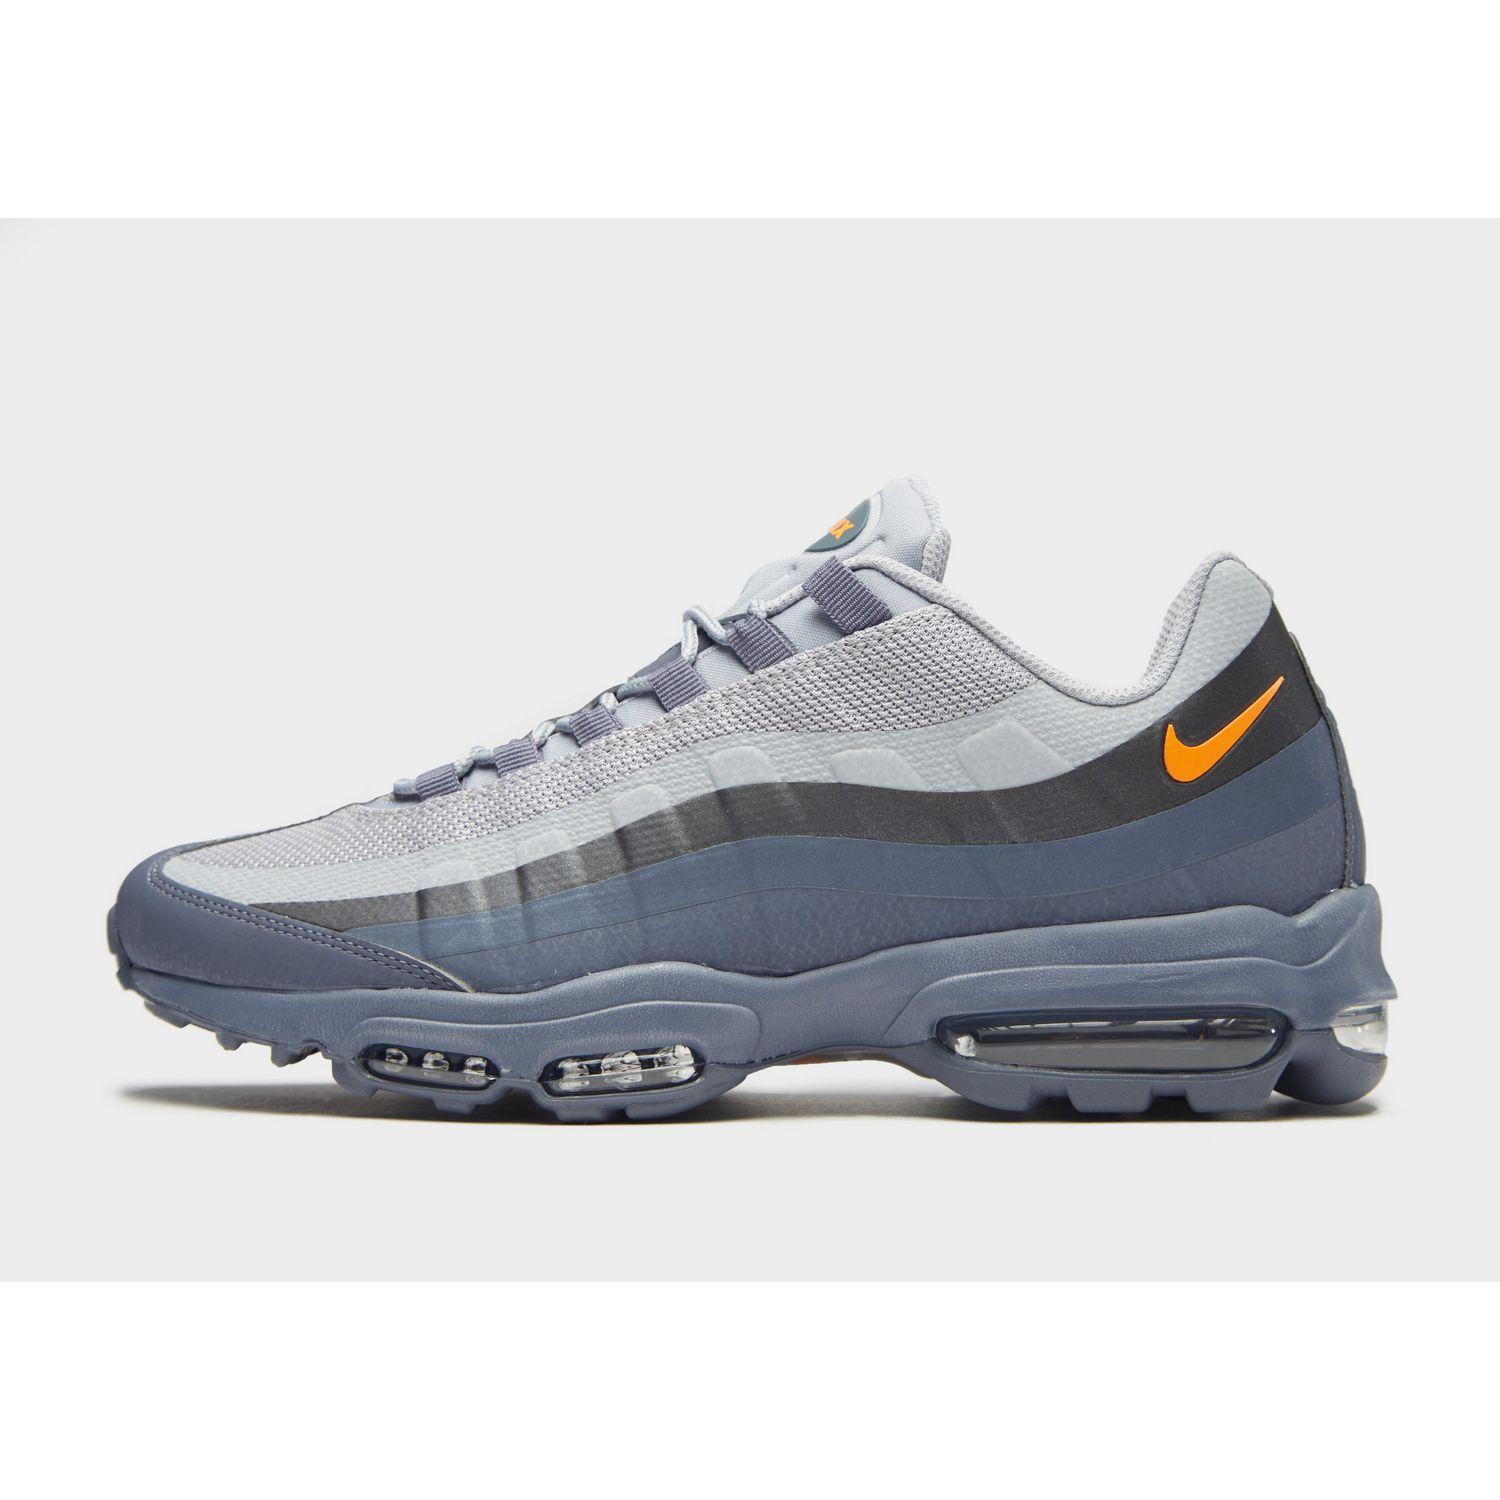 Nike Synthetic Air Max 95 Ultra Se in Grey/Blue/Orange (Blue) for ...